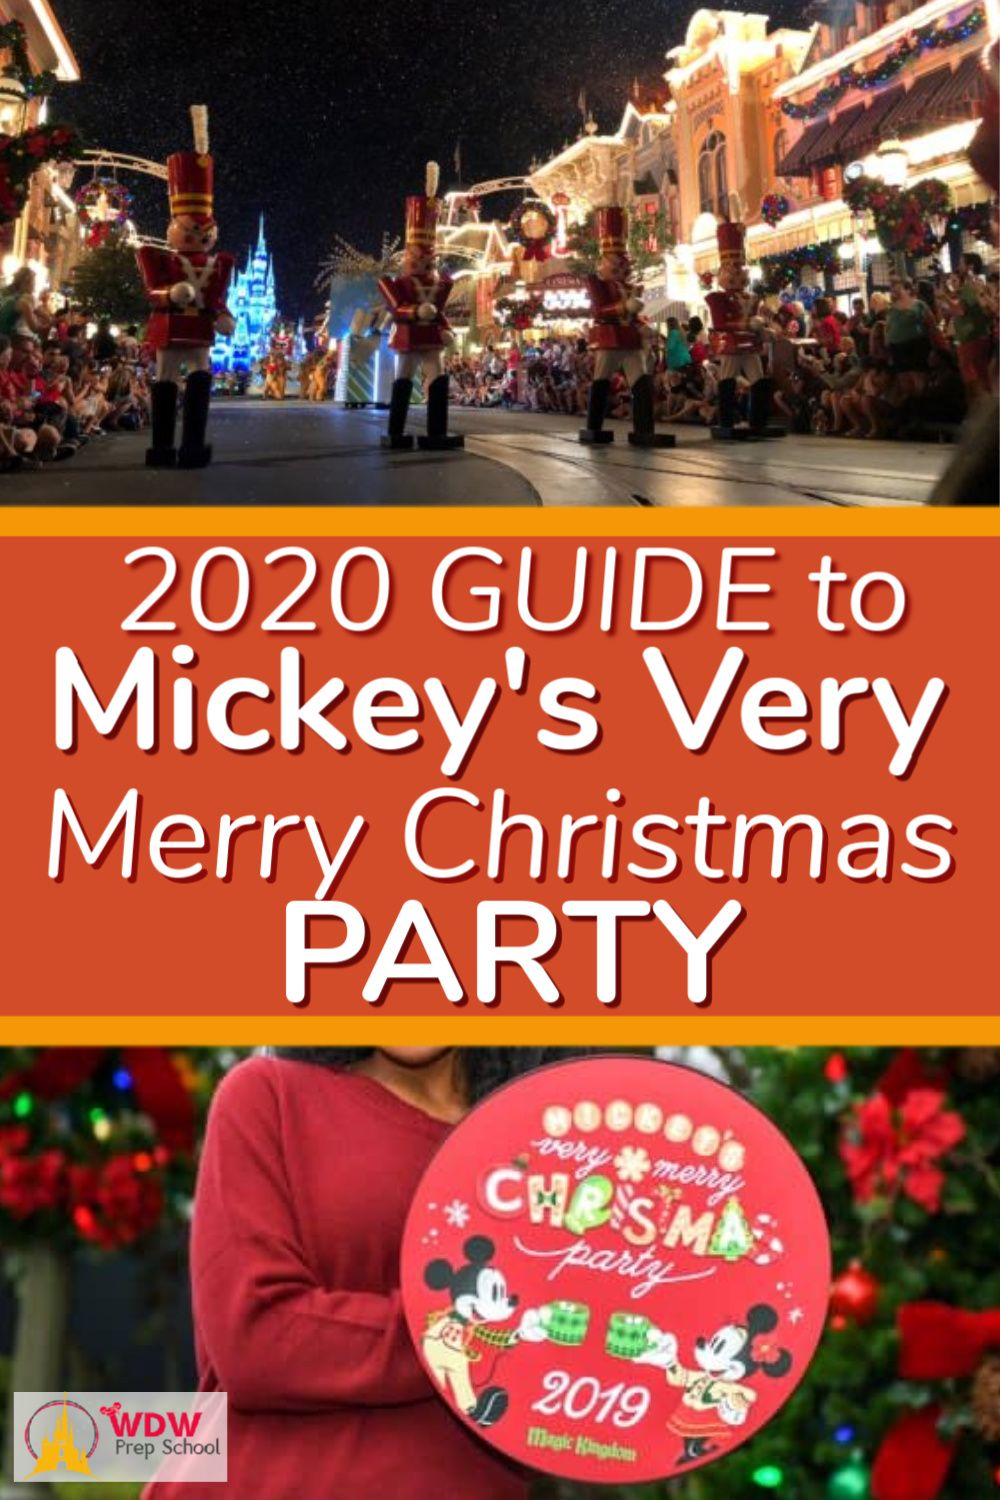 Disneys Christmas Party 2020 2020 Guide to Mickey's Very Merry Christmas Party in 2020